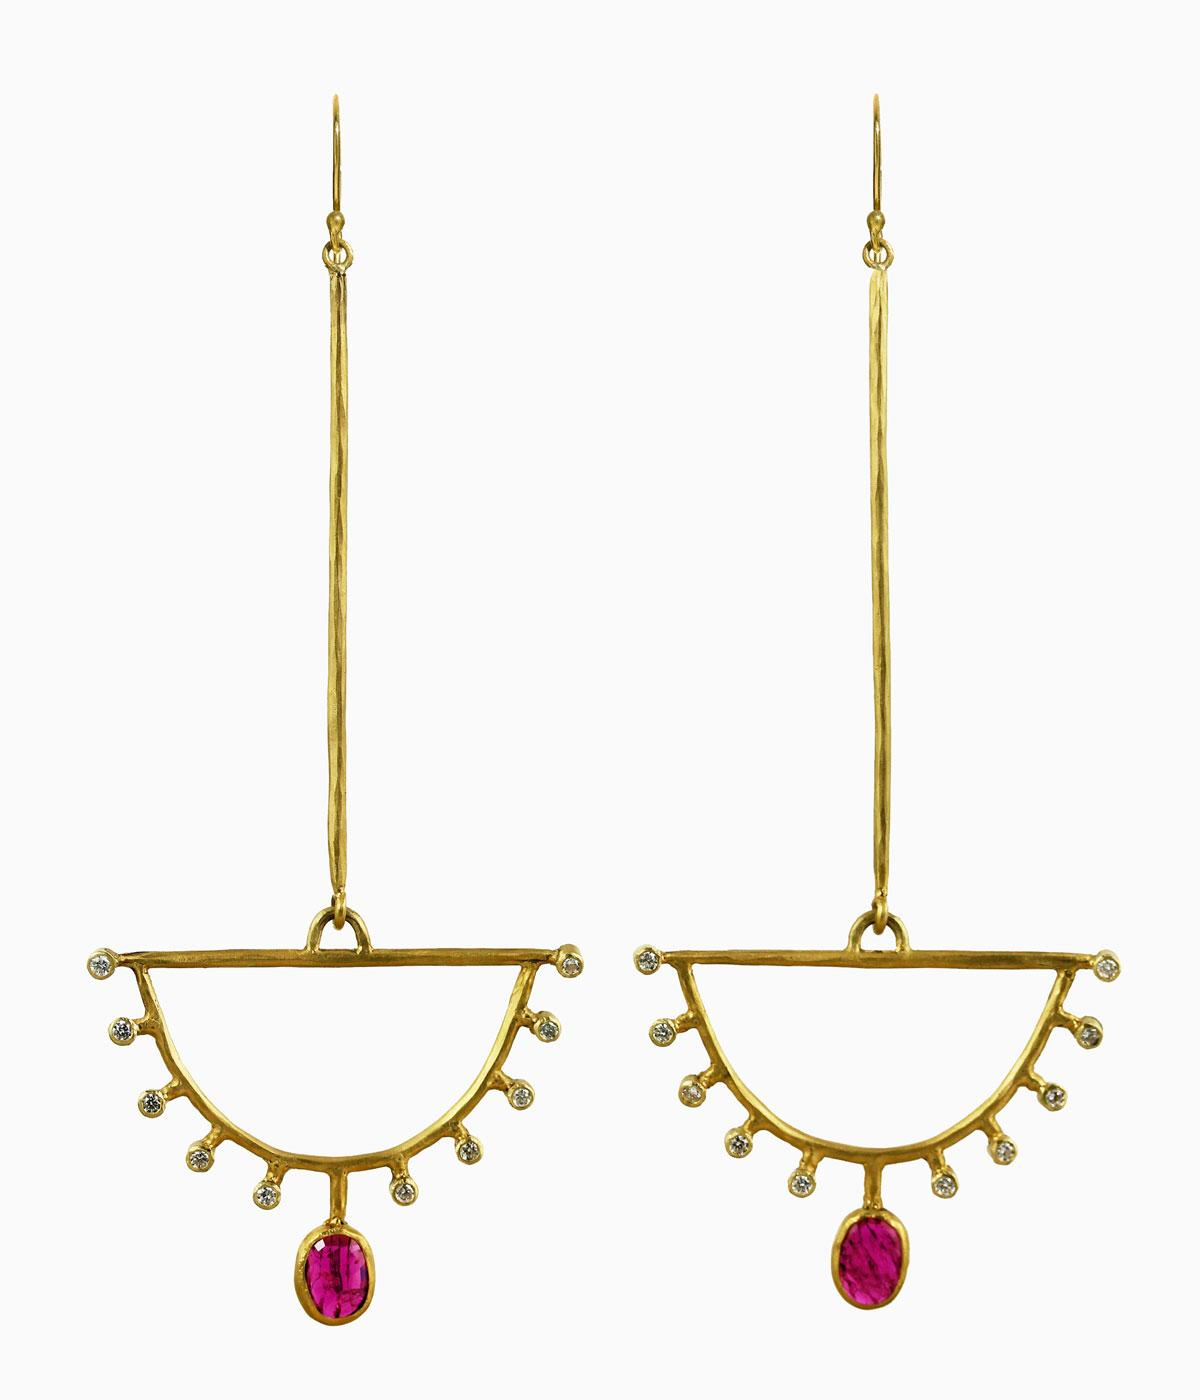 Gold dangly earrings with rubies hanging from them